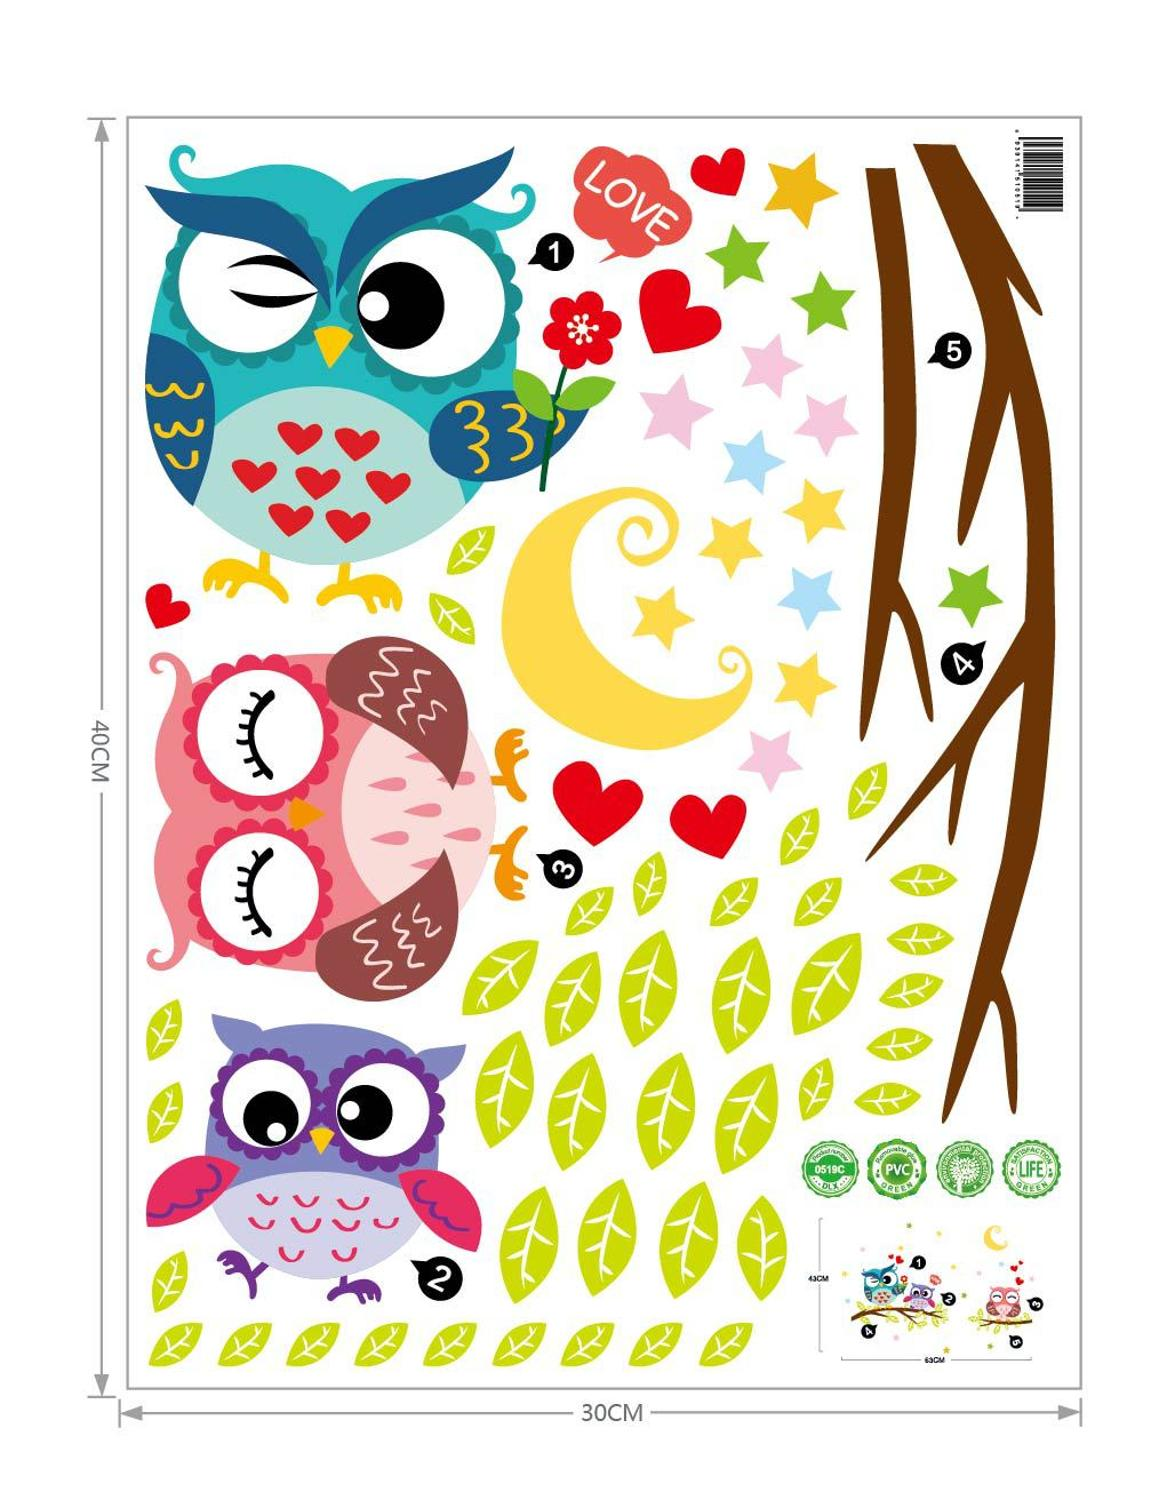 Wallpaper Sticker Happy Removable Waterproof Cartoon Animal Owl Wall Sticker Kids Home Decor Wallpapers For Living Room 6